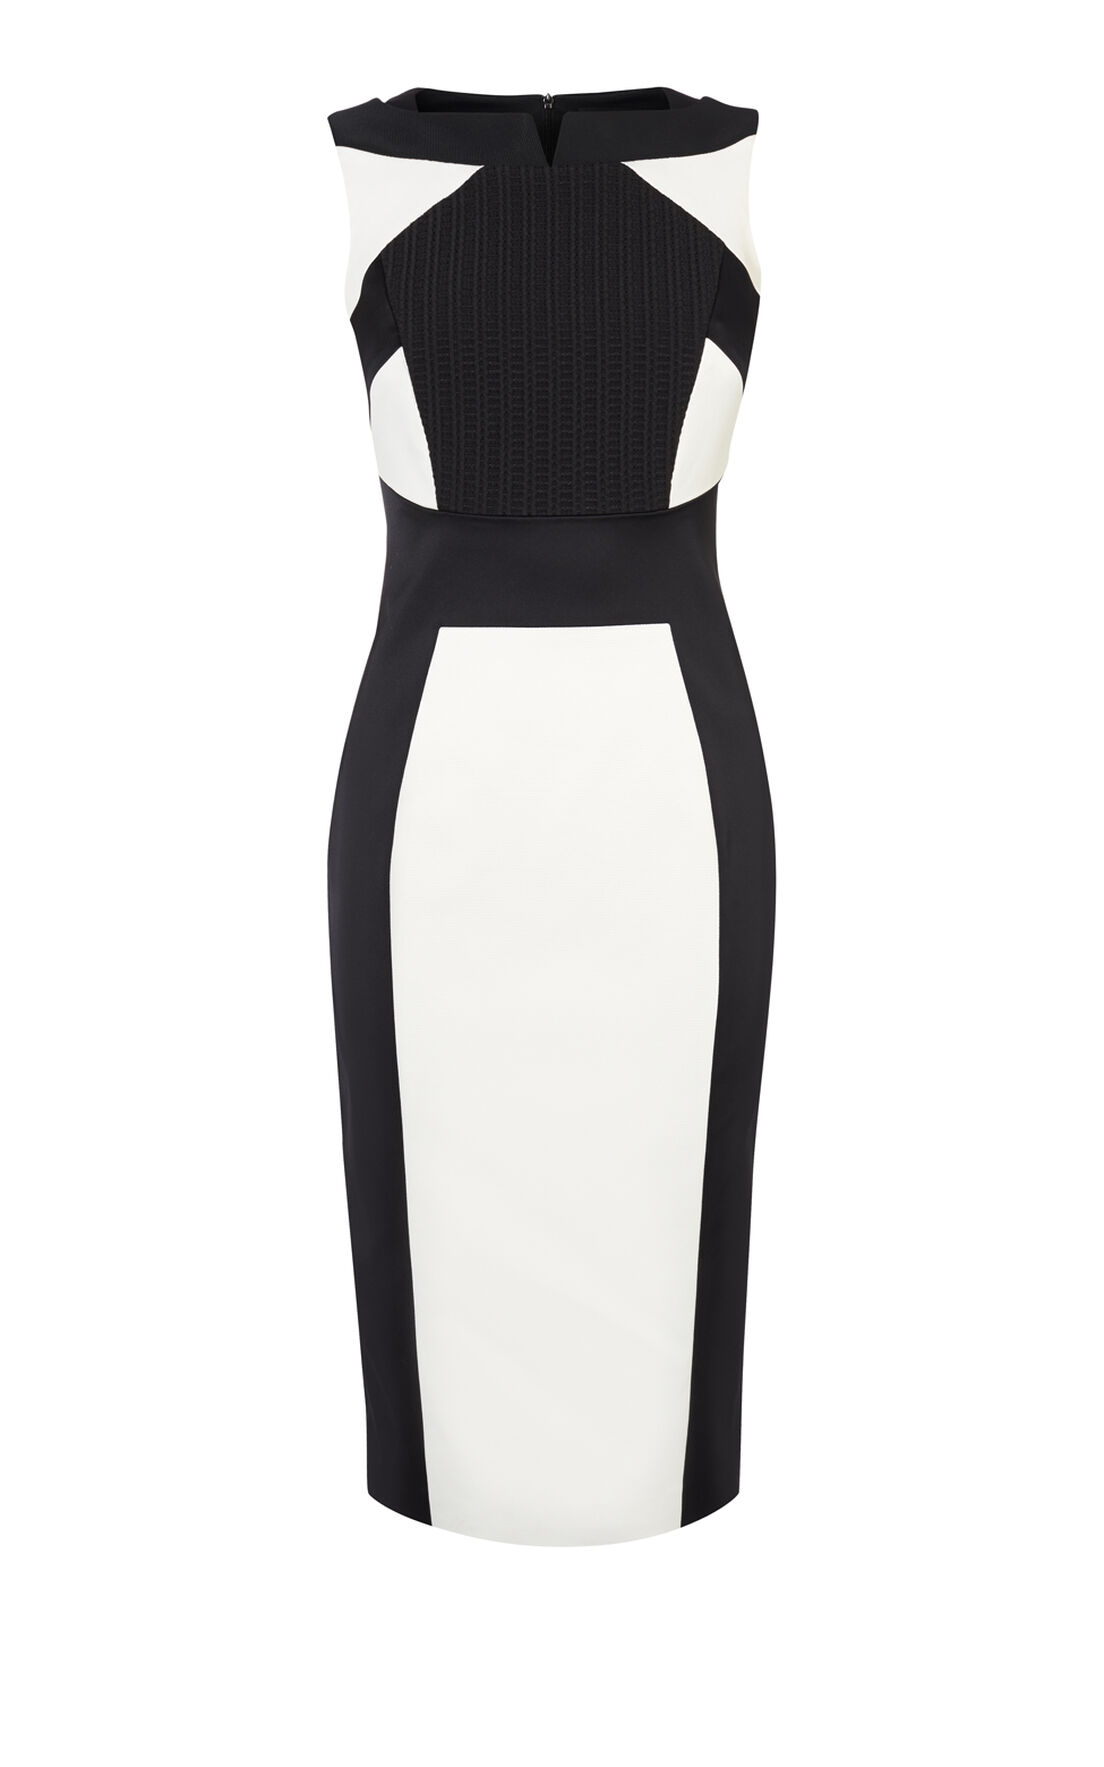 Karen Millen, MONOCHROME PENCIL DRESS Black & White 0